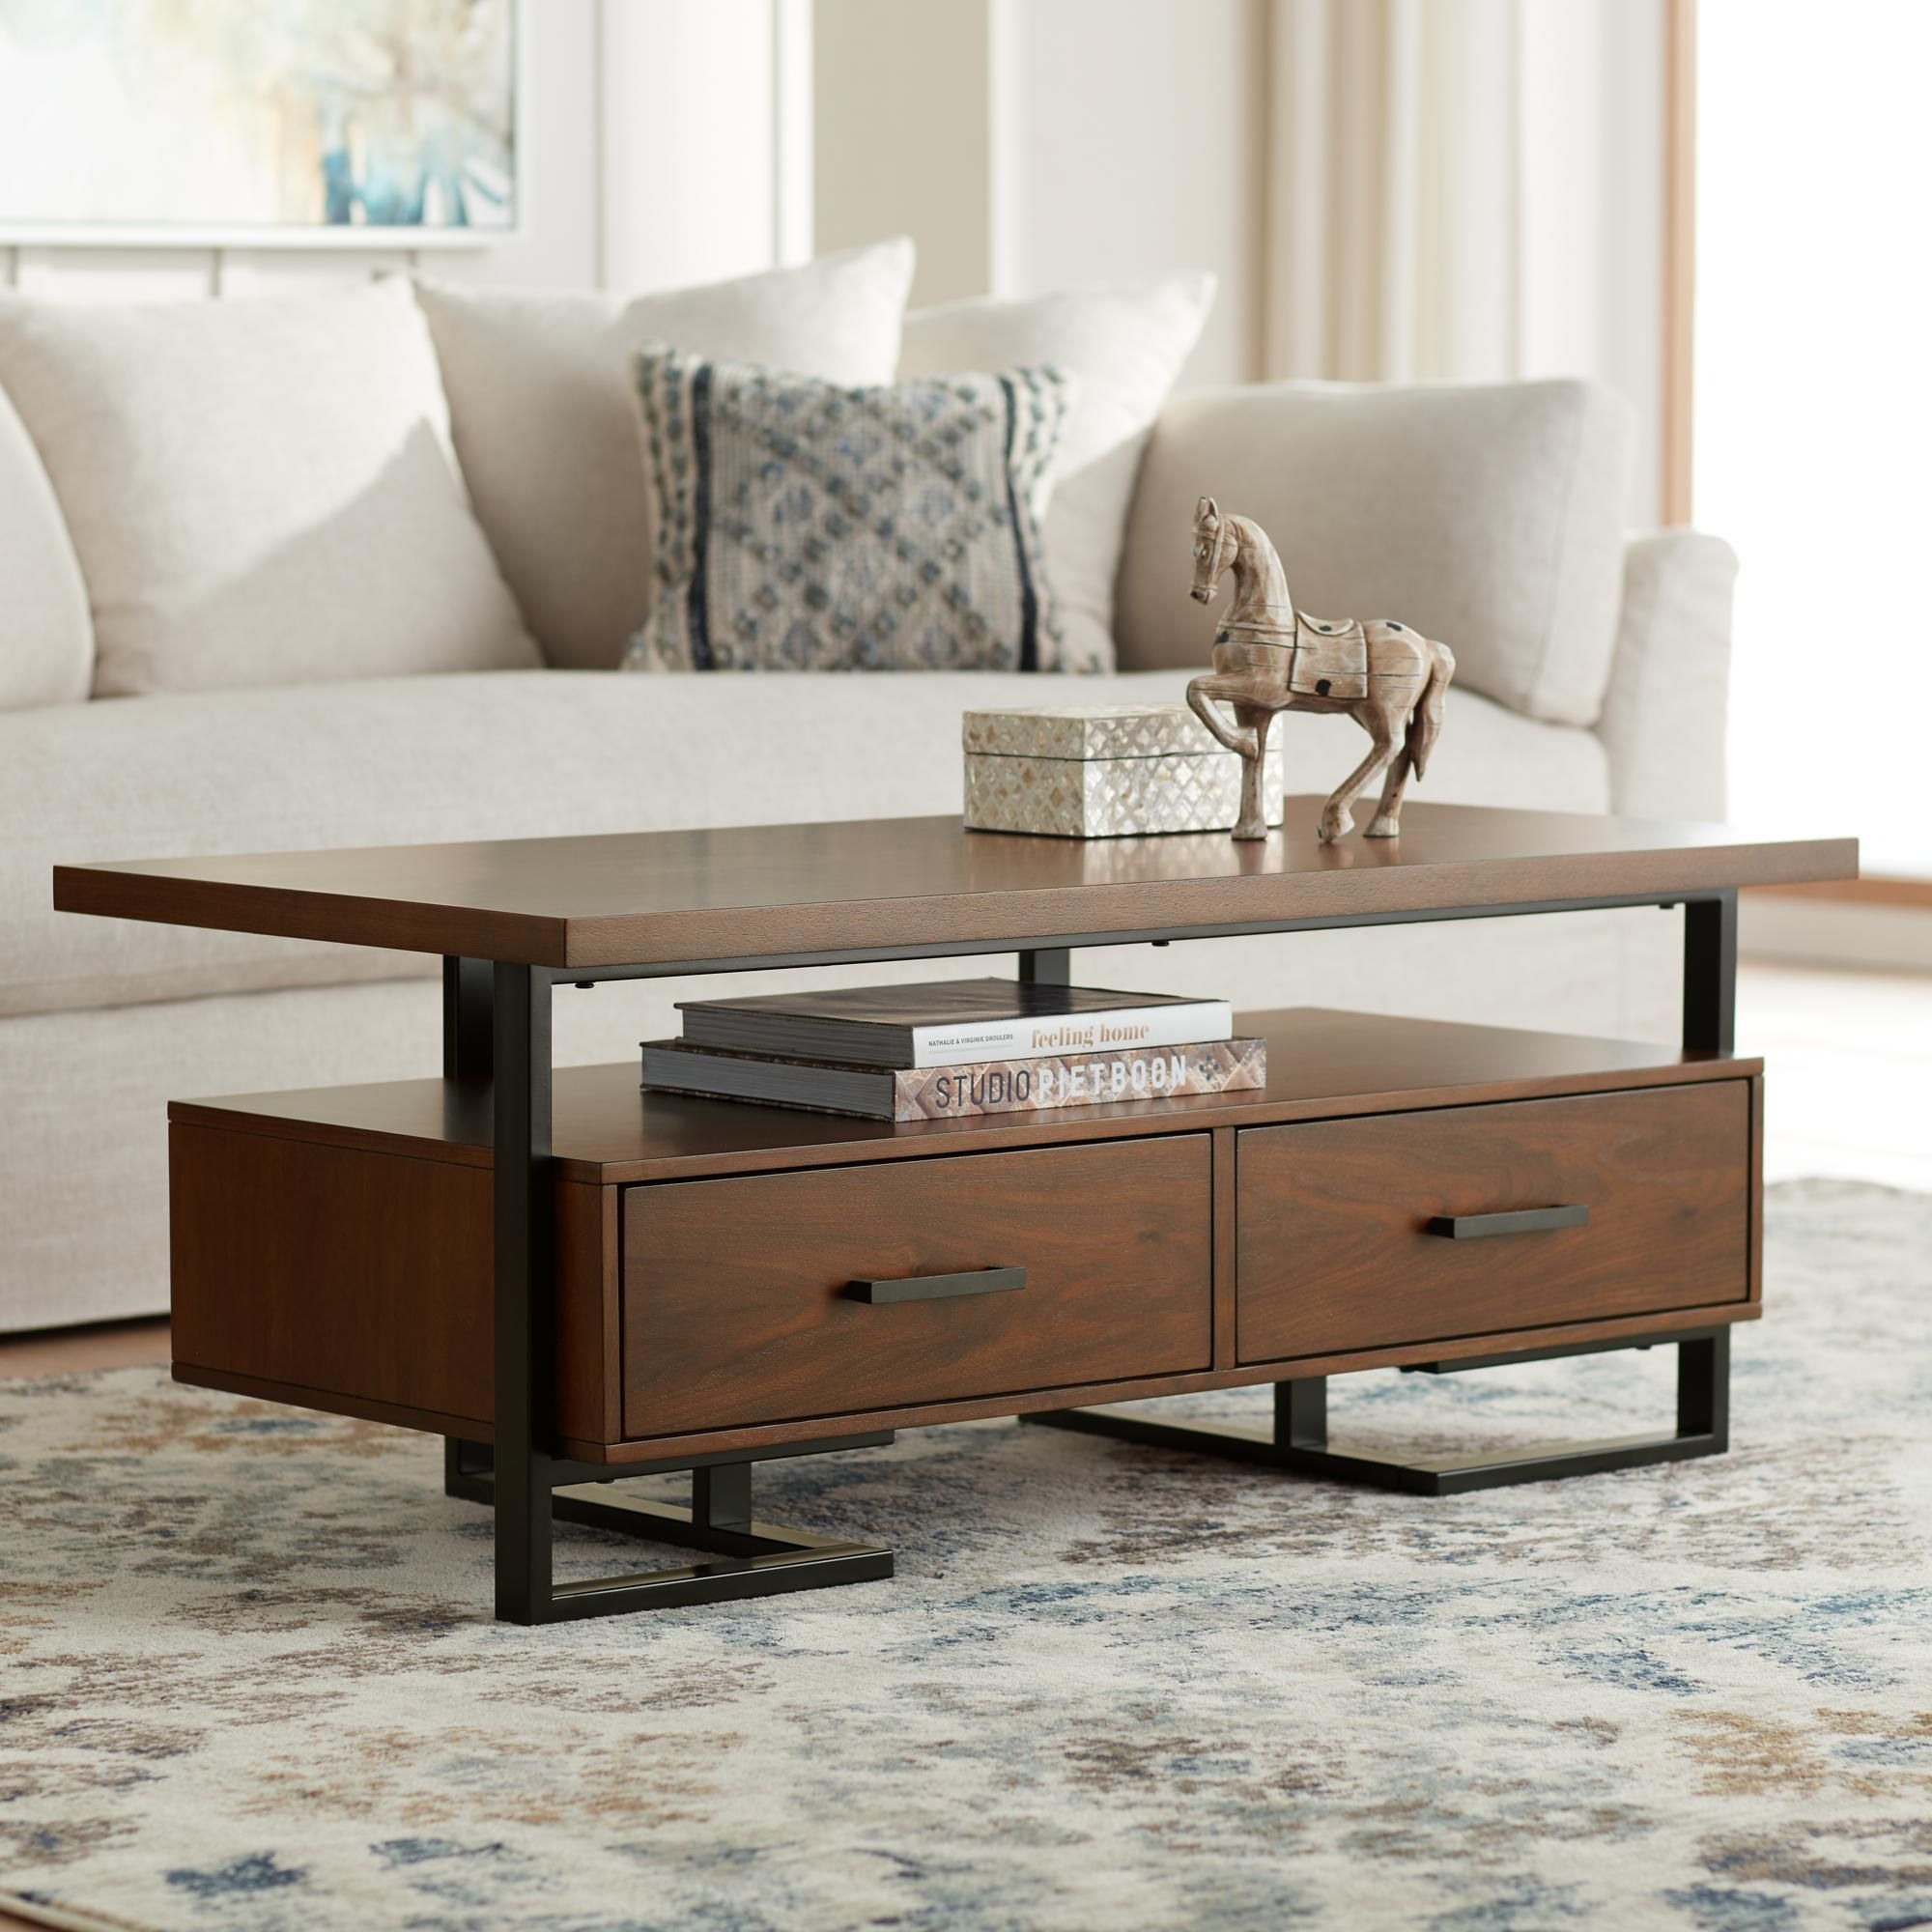 Sedley 48 Inch Wide Walnut Veneer 2 Drawer Modern Coffee Table In